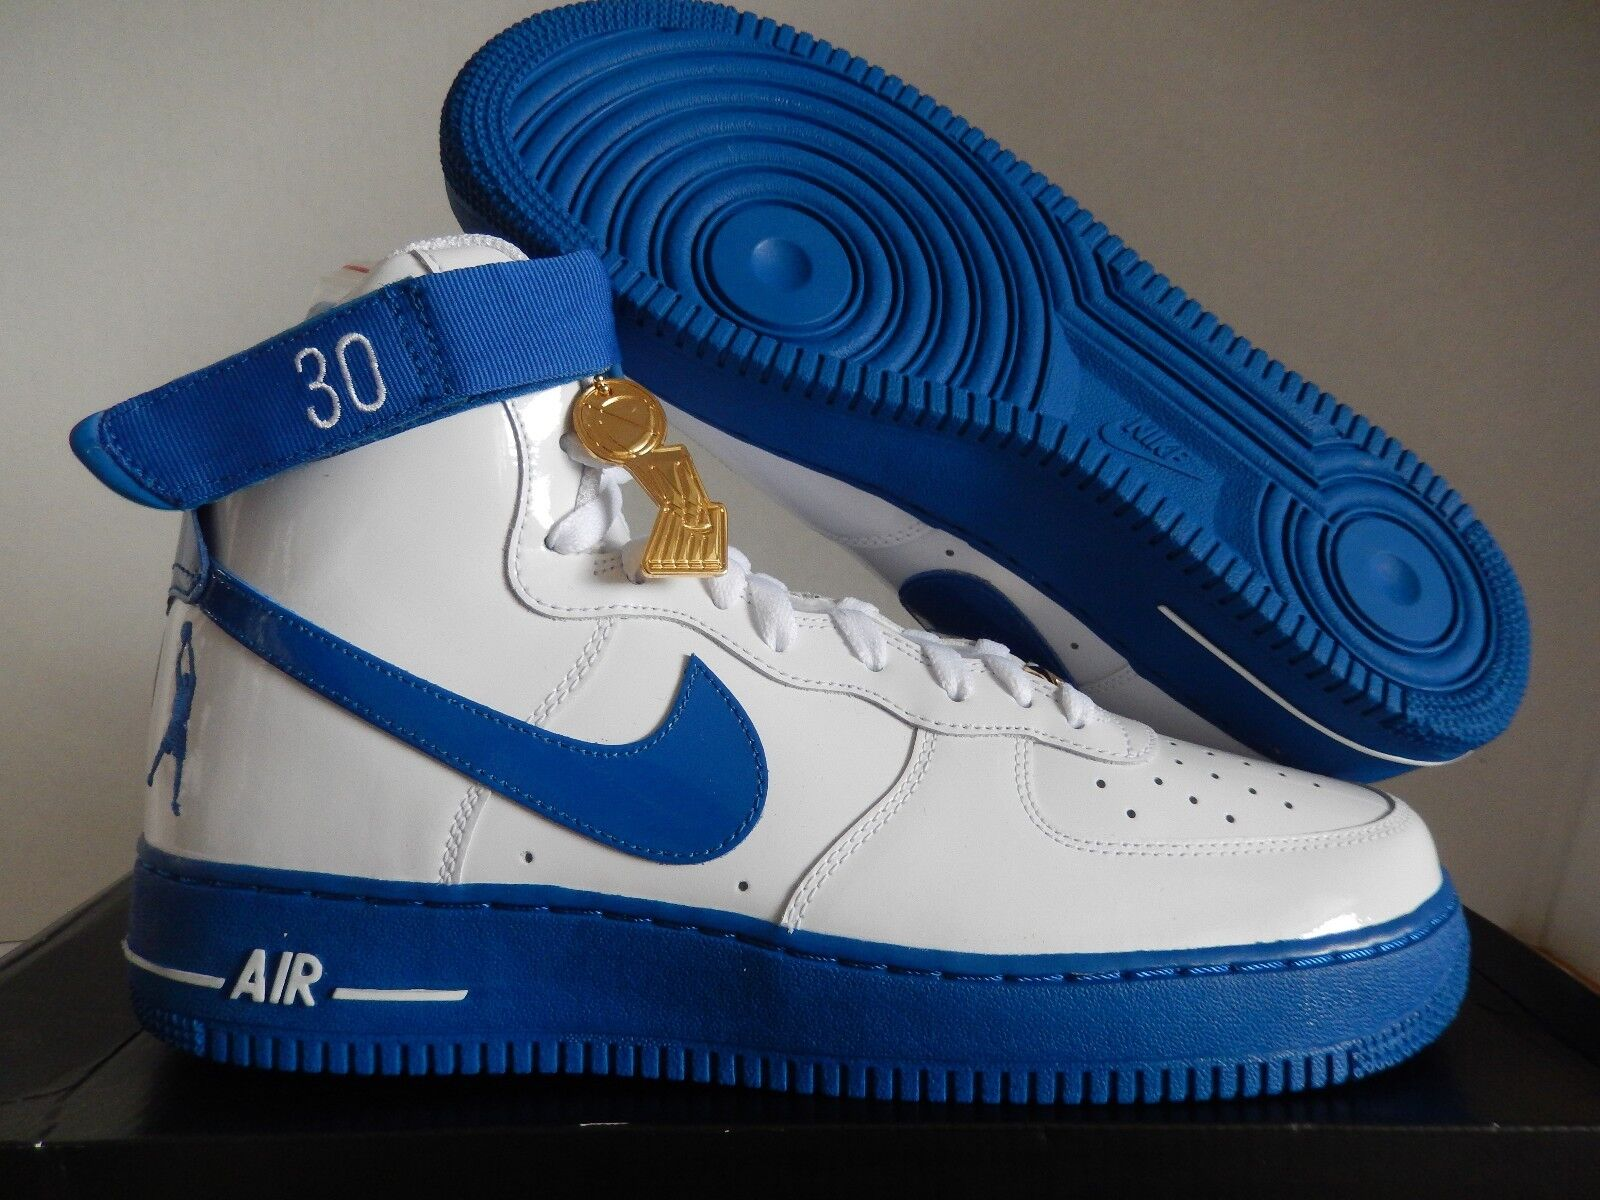 NIKE AIR FORCE 1 HIGH -B RETRO CT16 QS RASHEED WALLACE blanc -B HIGH SZ 12 e919d4